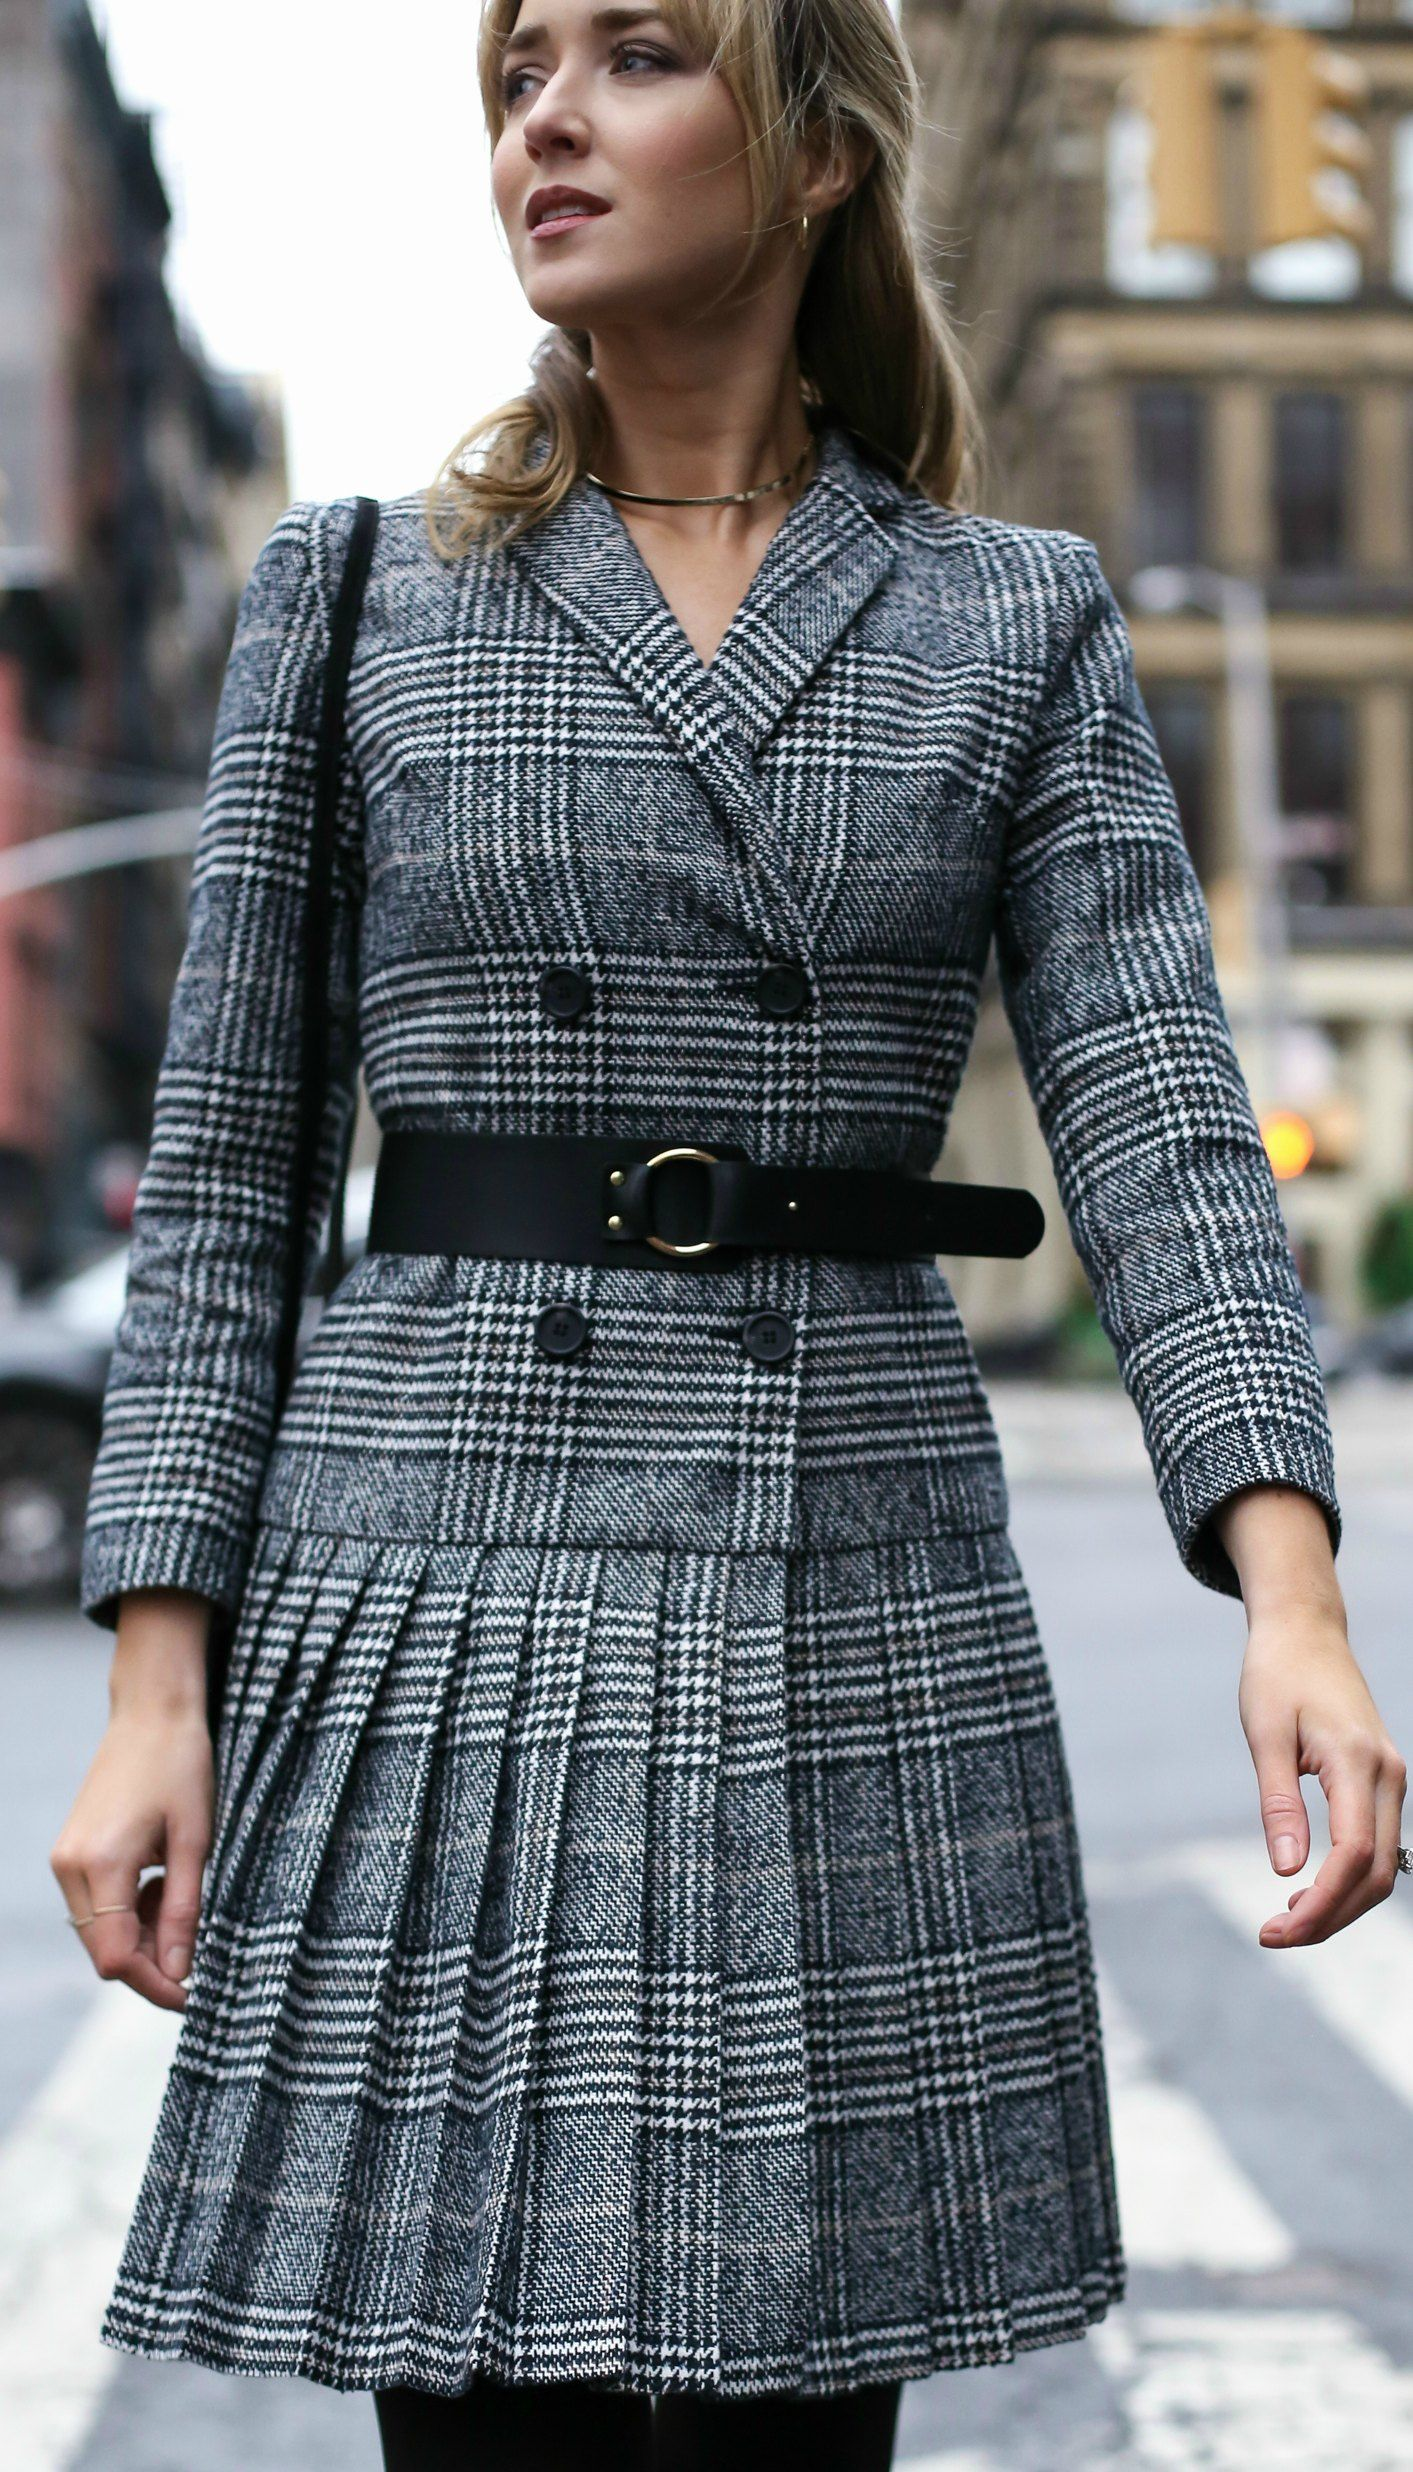 Classic Glen Plaid Pleated Double Breasted Suit Dress Opaque Black